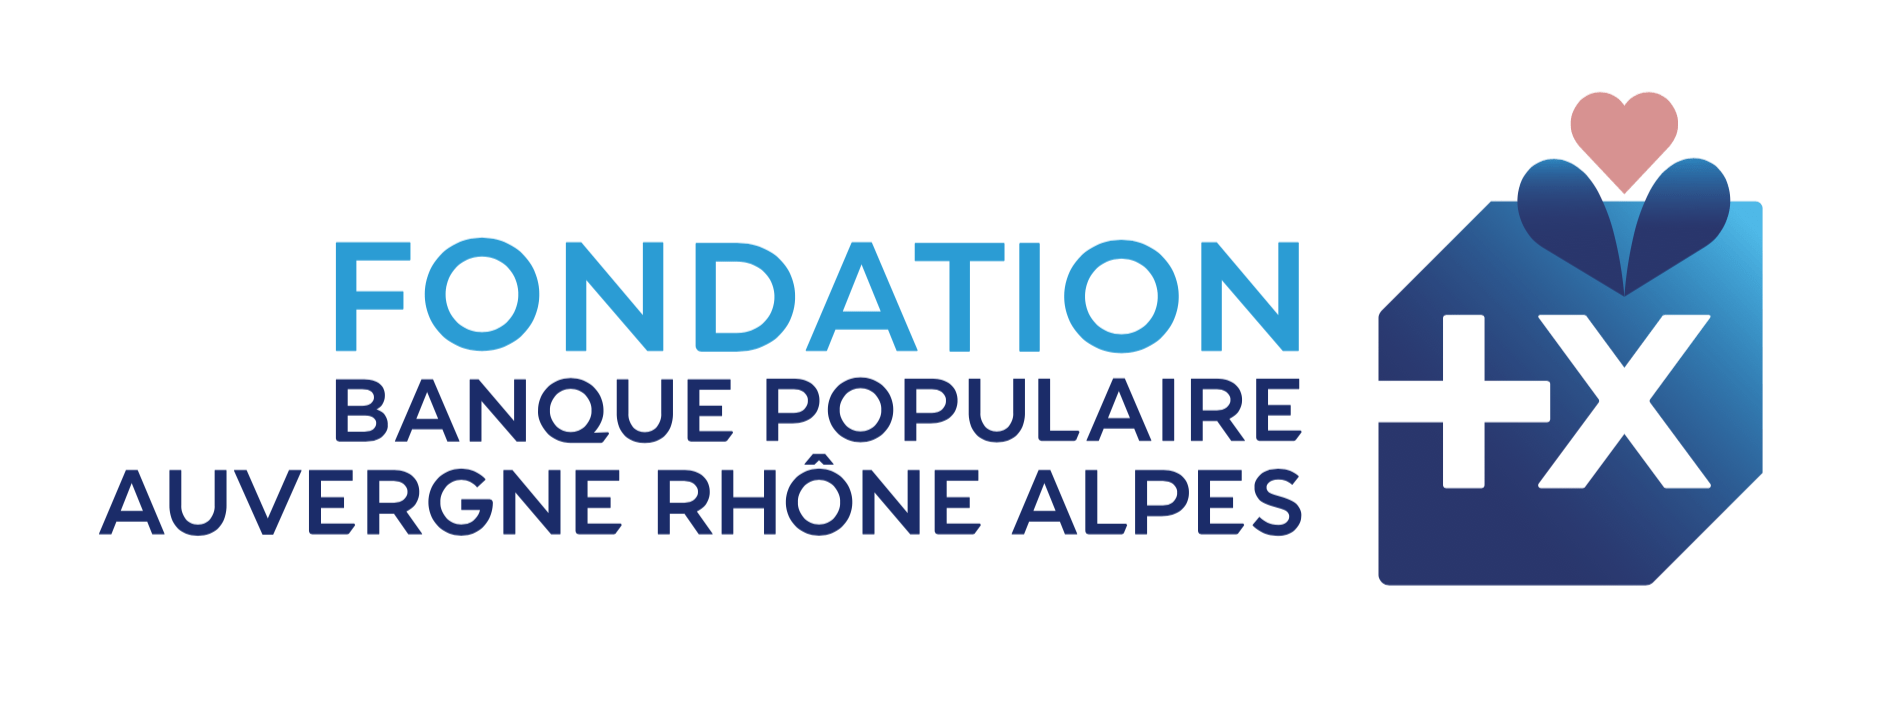 fondation-banque-pop